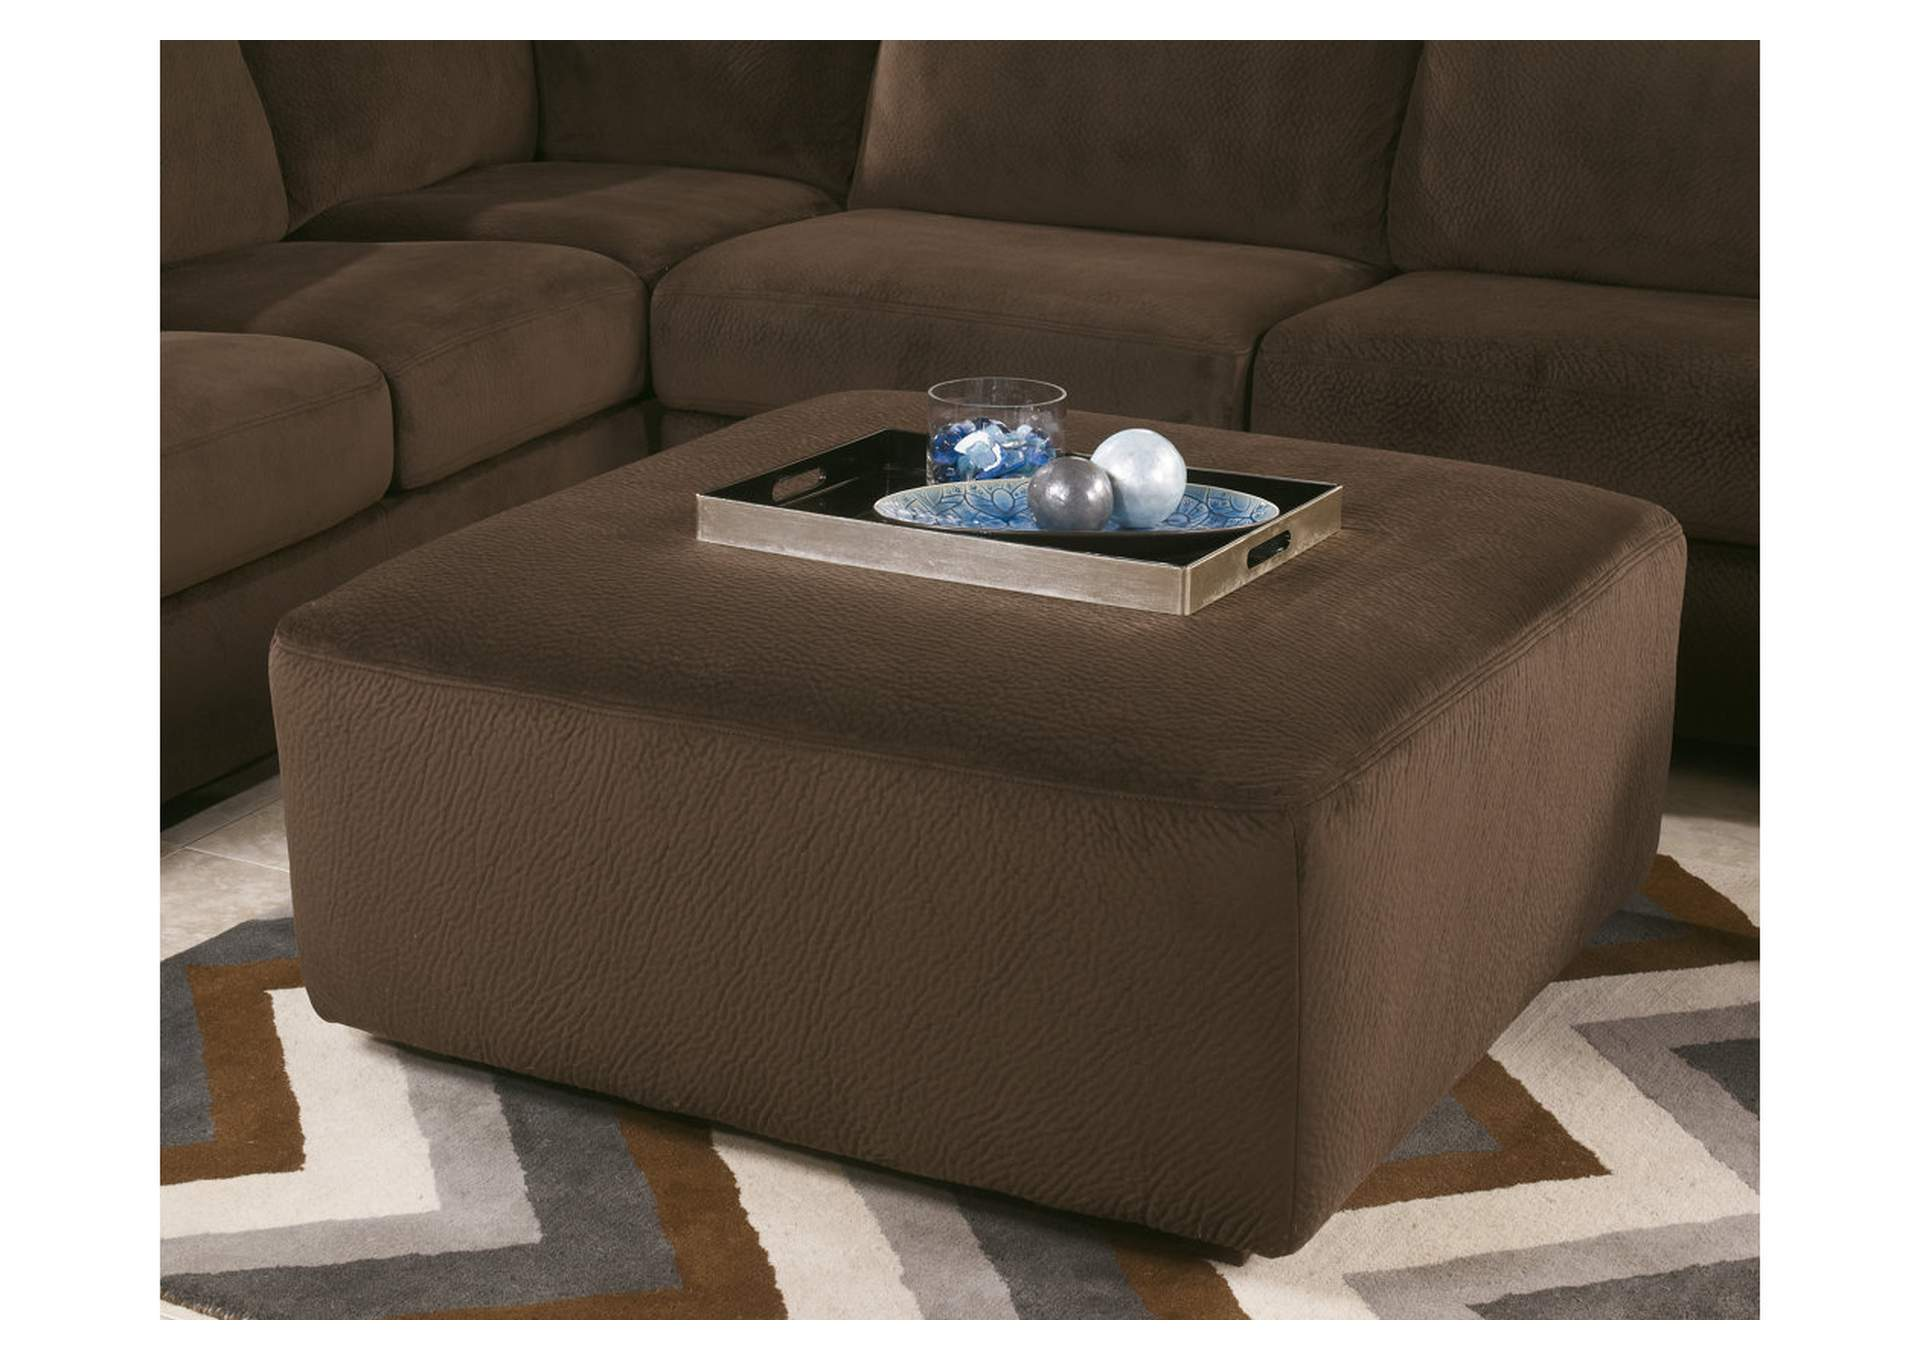 Jessa Place Chocolate Oversized Accent Ottoman,Signature Design By Ashley